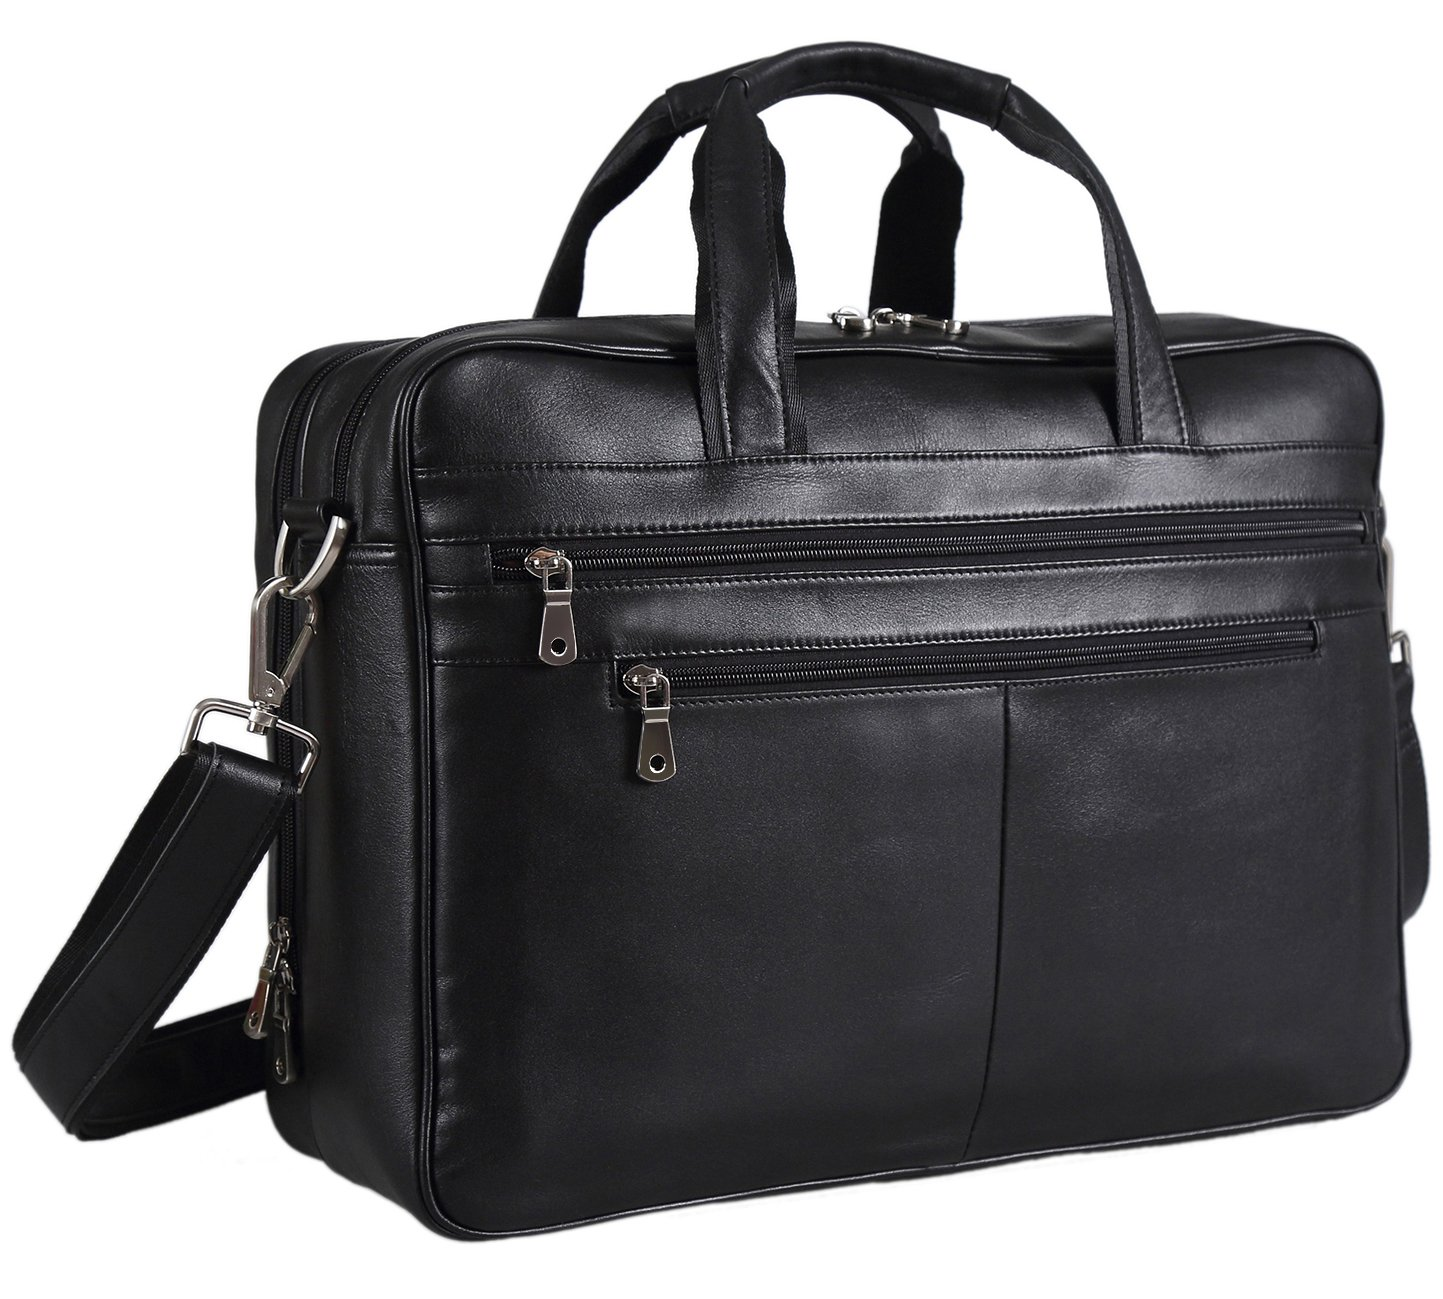 Polare Real Soft Nappa Leather 17 Laptop Case Professional Briefcase Business Bag For Men (Black)